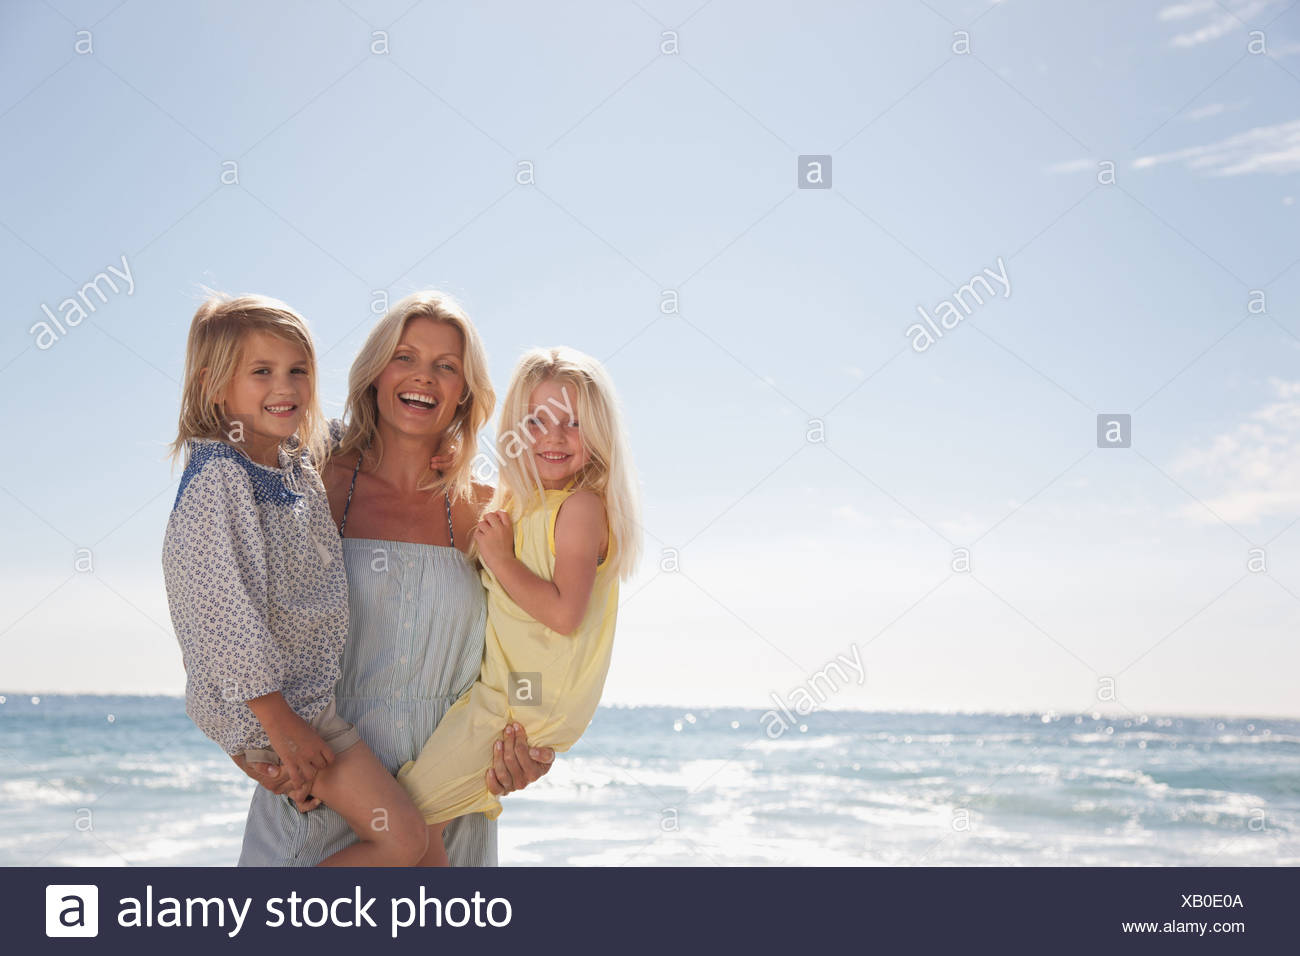 Mother holding daughters on beach - Stock Image